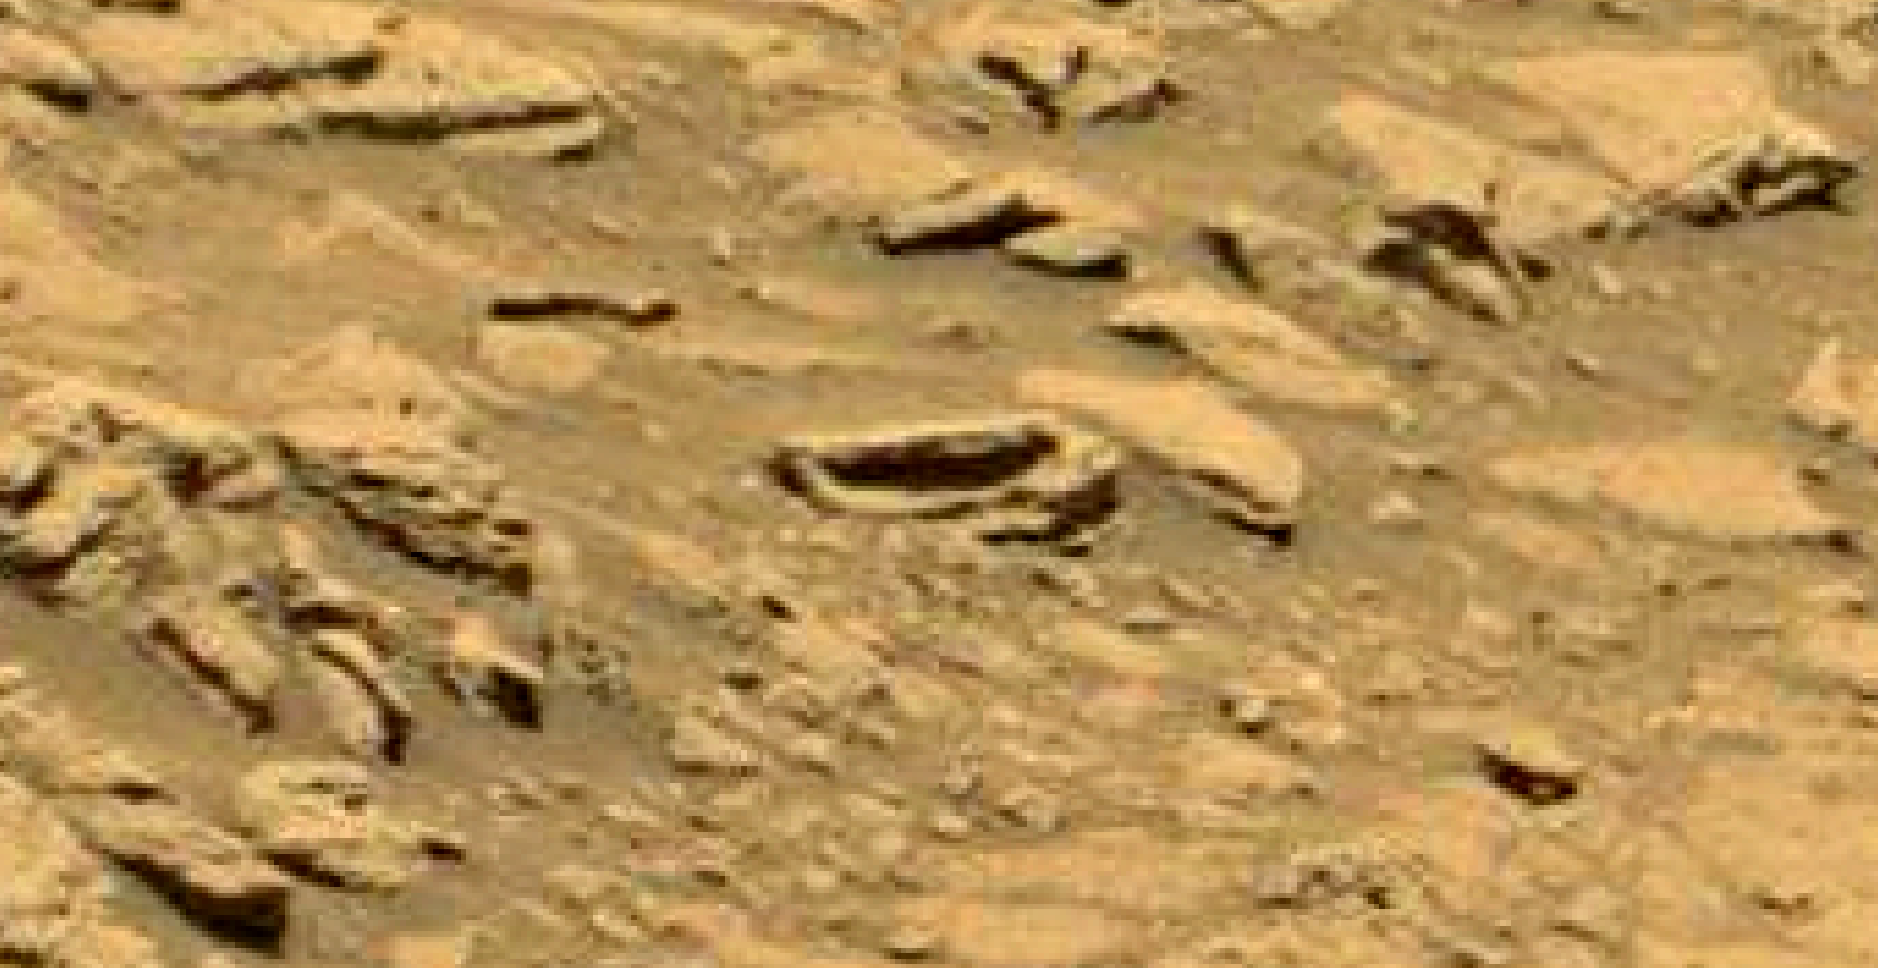 mars sol 1353 anomaly-artifacts 40 was life on mars